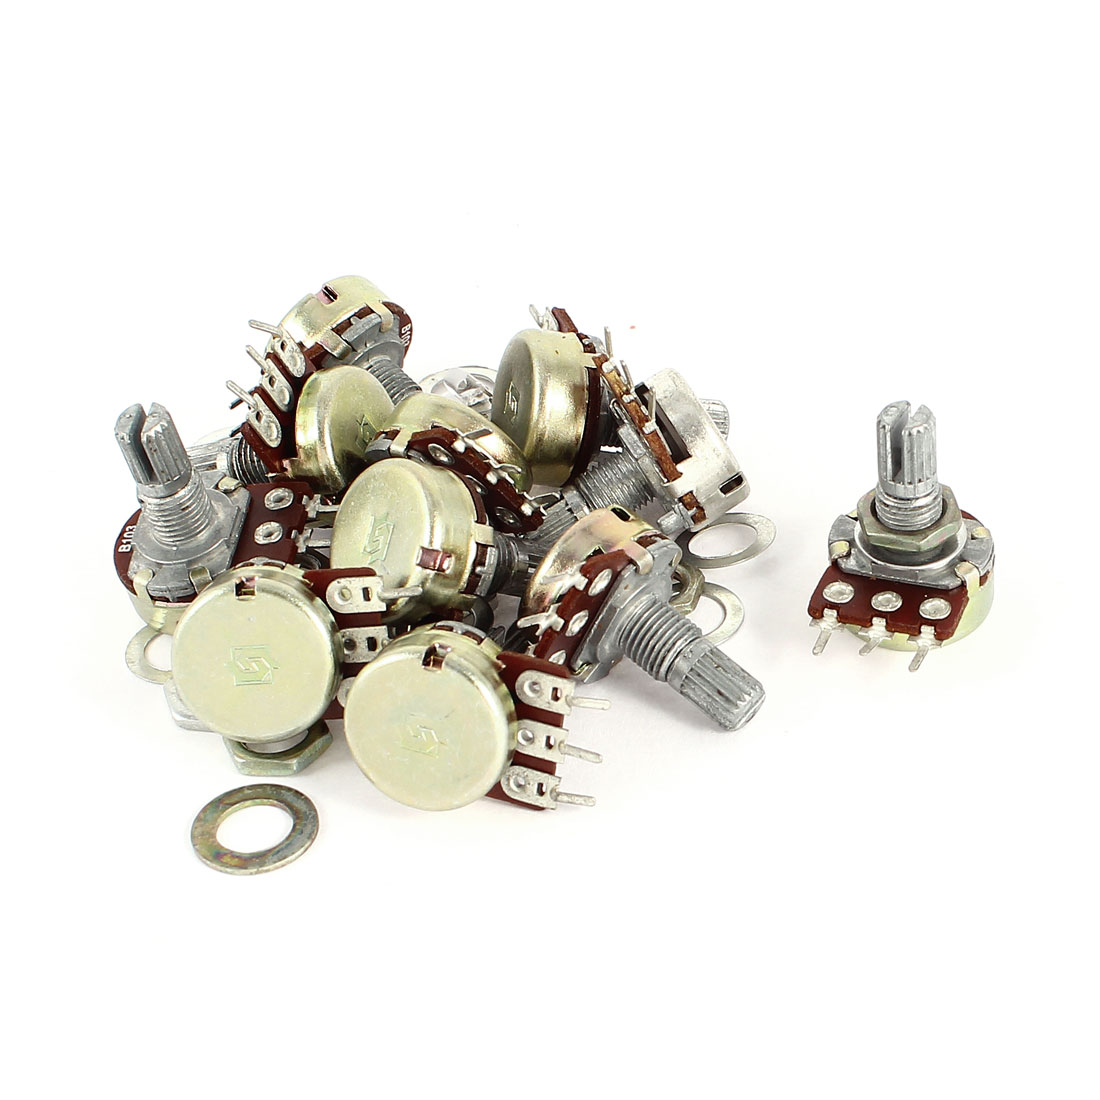 10Pcs B10K 10K Ohm 15mm Knurled Shaft Top Adjustment 3 Terminals Single Linear Rotary Taper Potentiometer Panel Pot